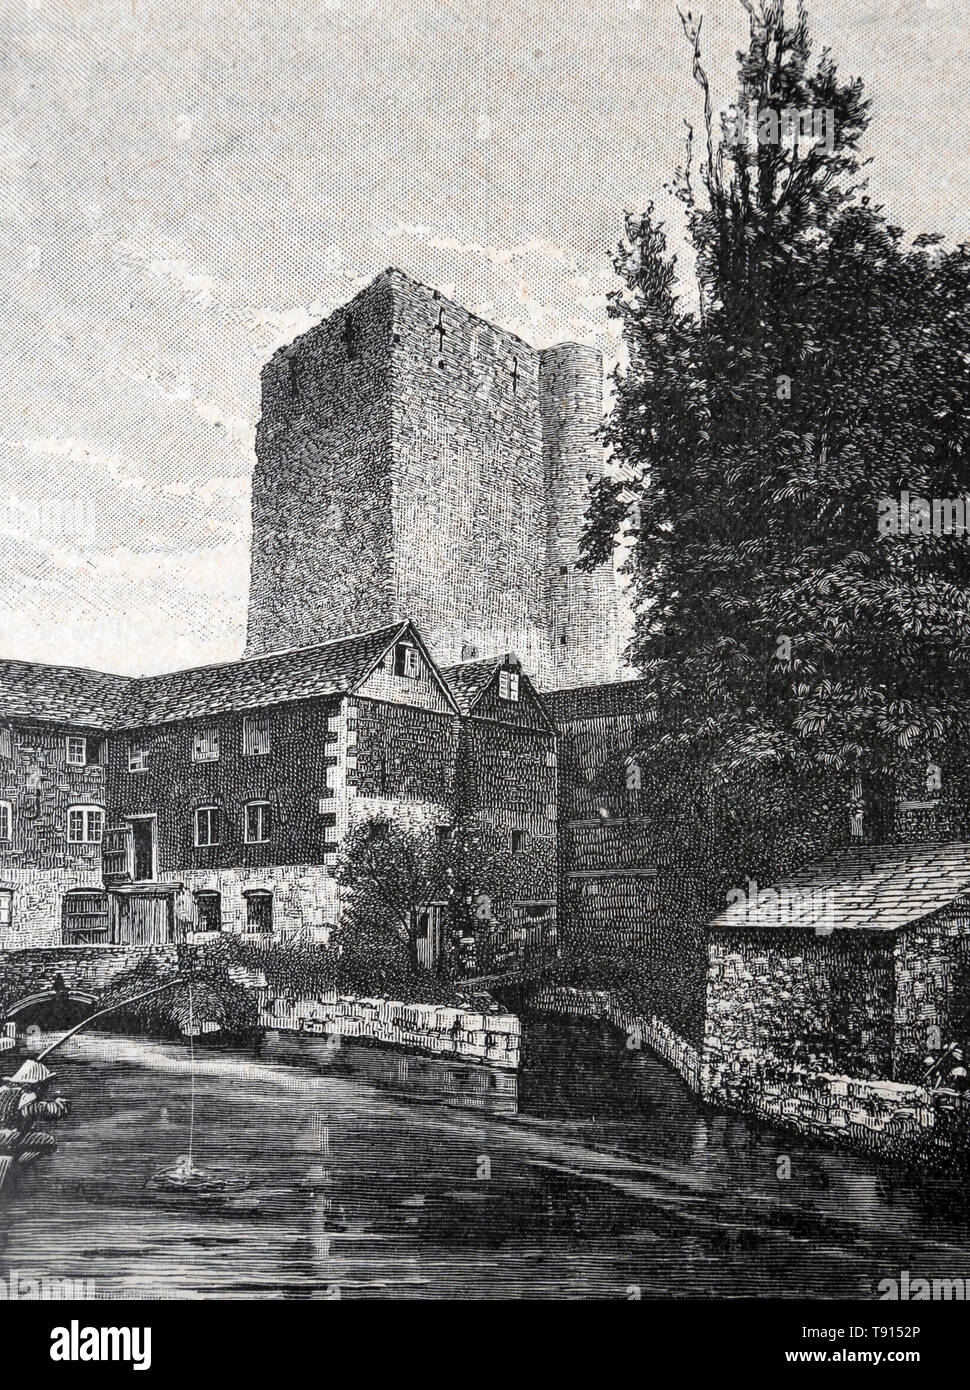 Illustration Depicting St George's Tower at Oxford Castle from photograph by Taunt & Co - Stock Image